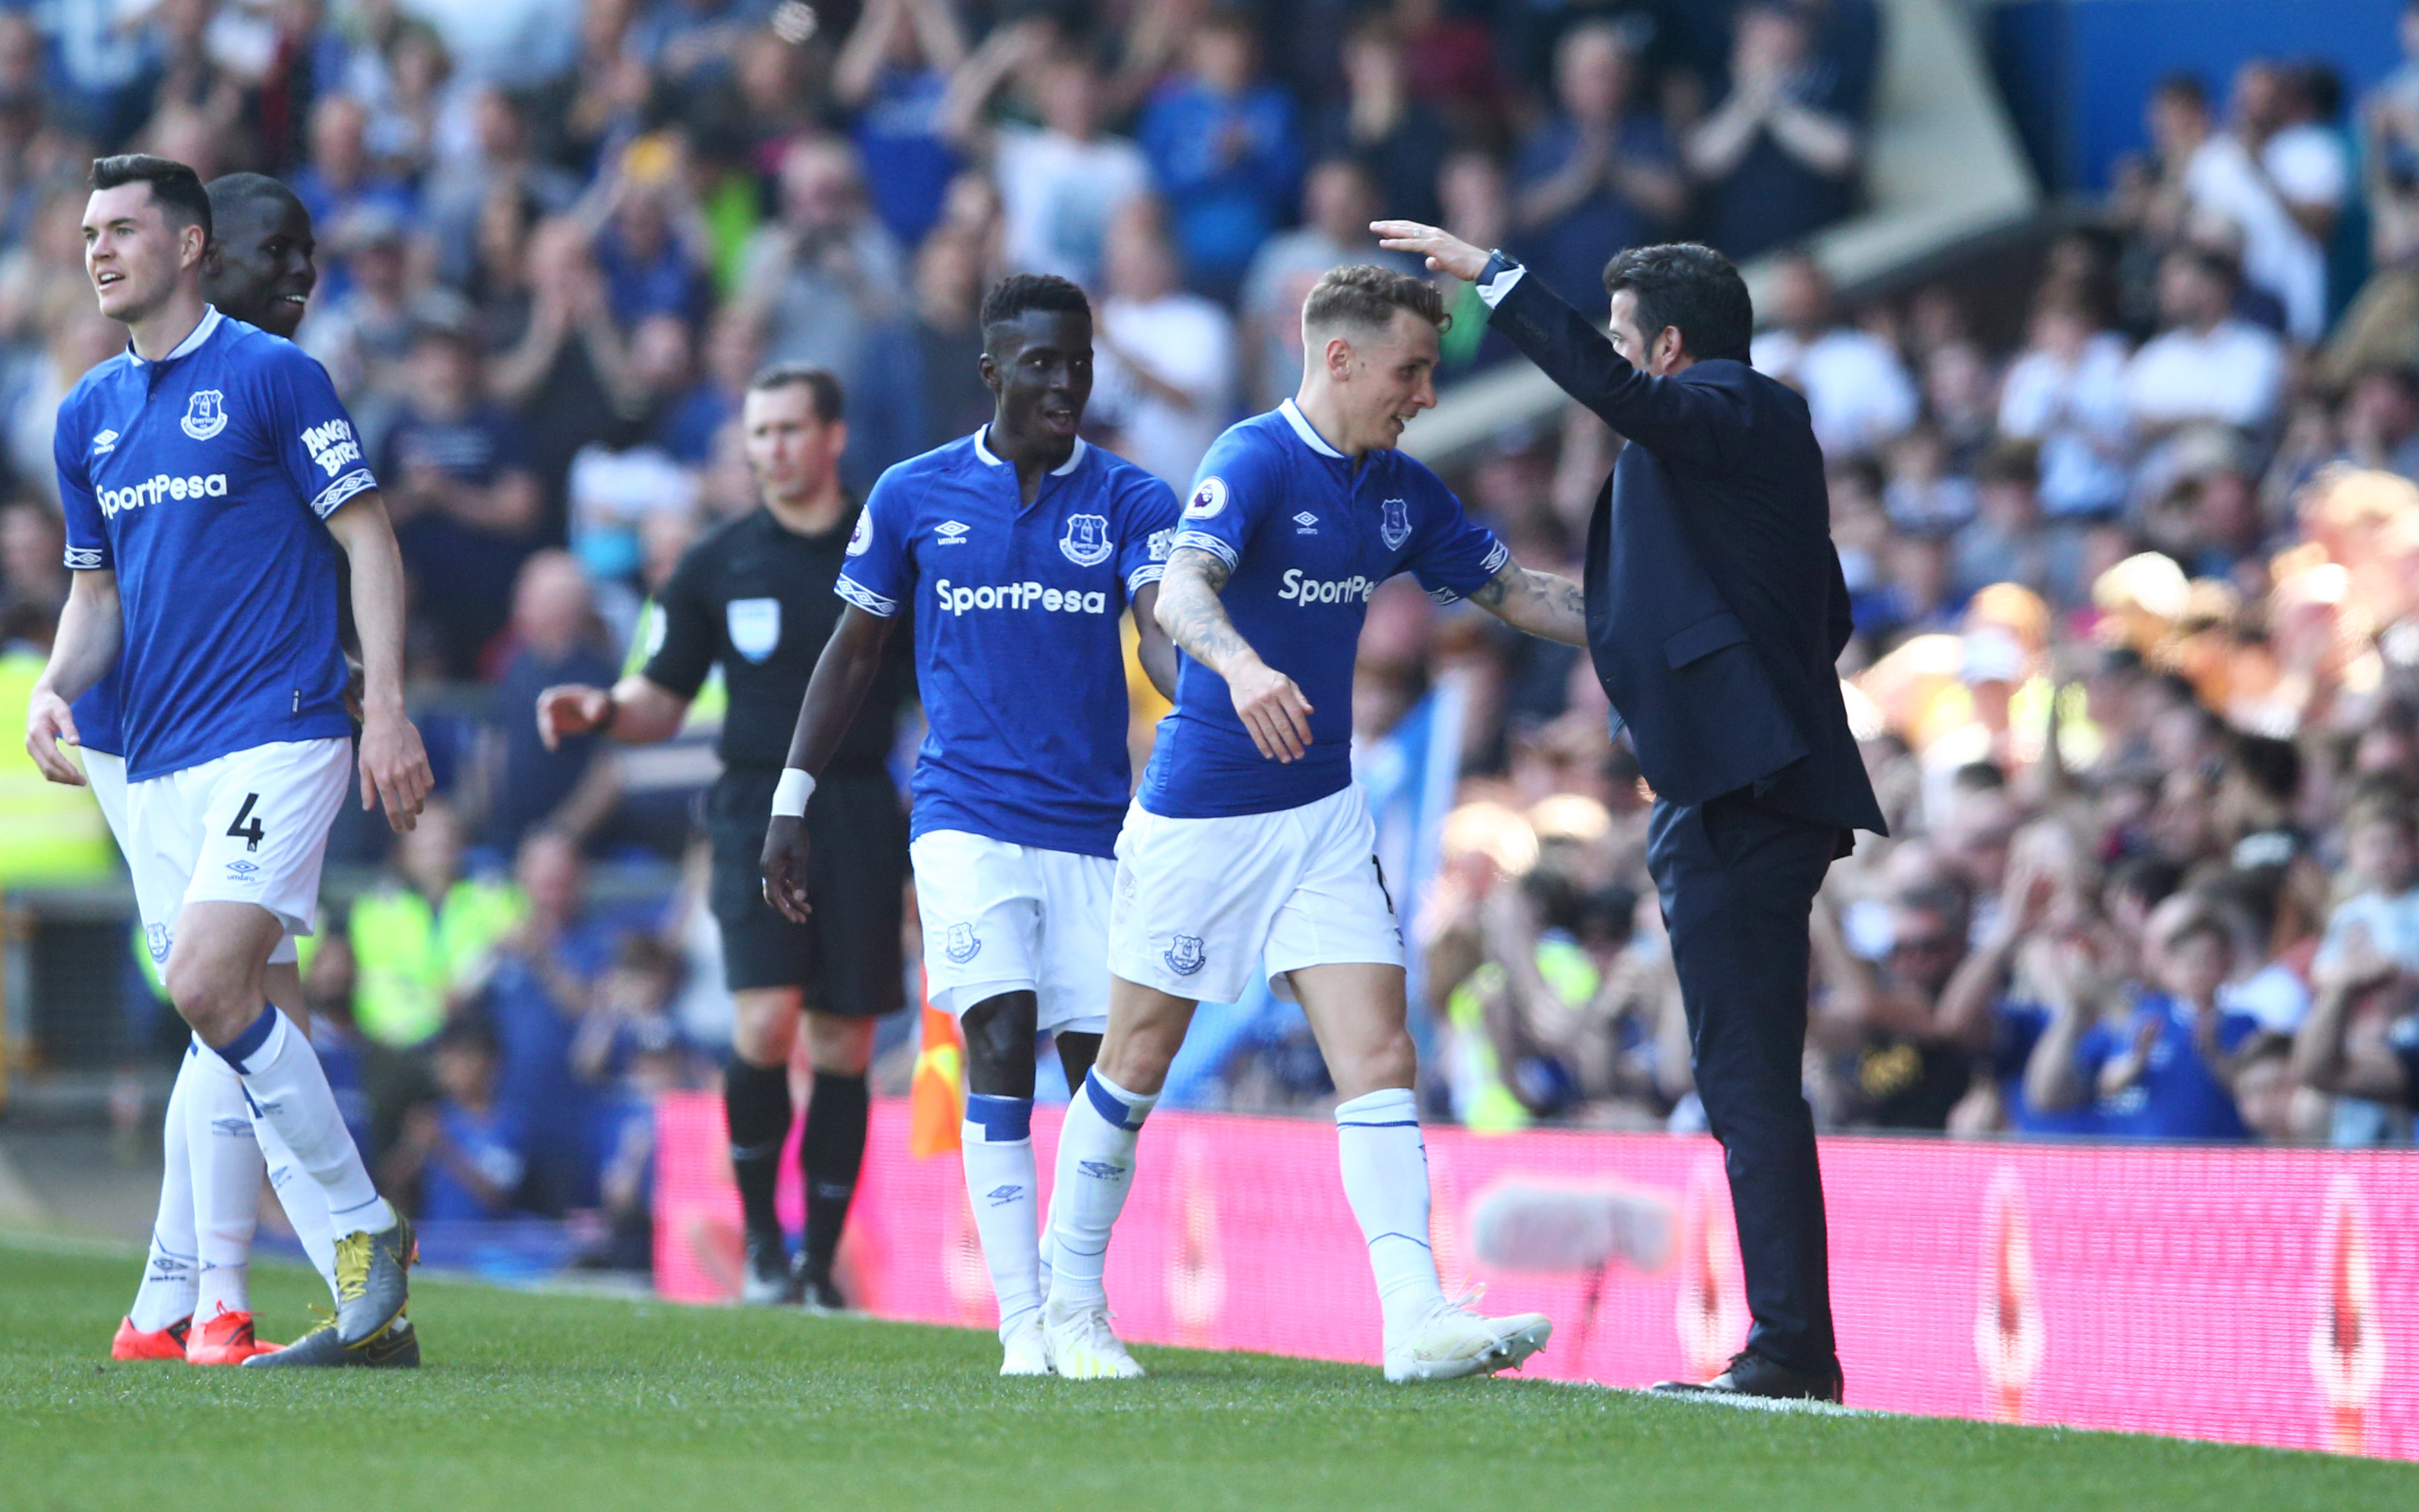 Everton's annihilation of Manchester United only answers some of Marco Silva's questions